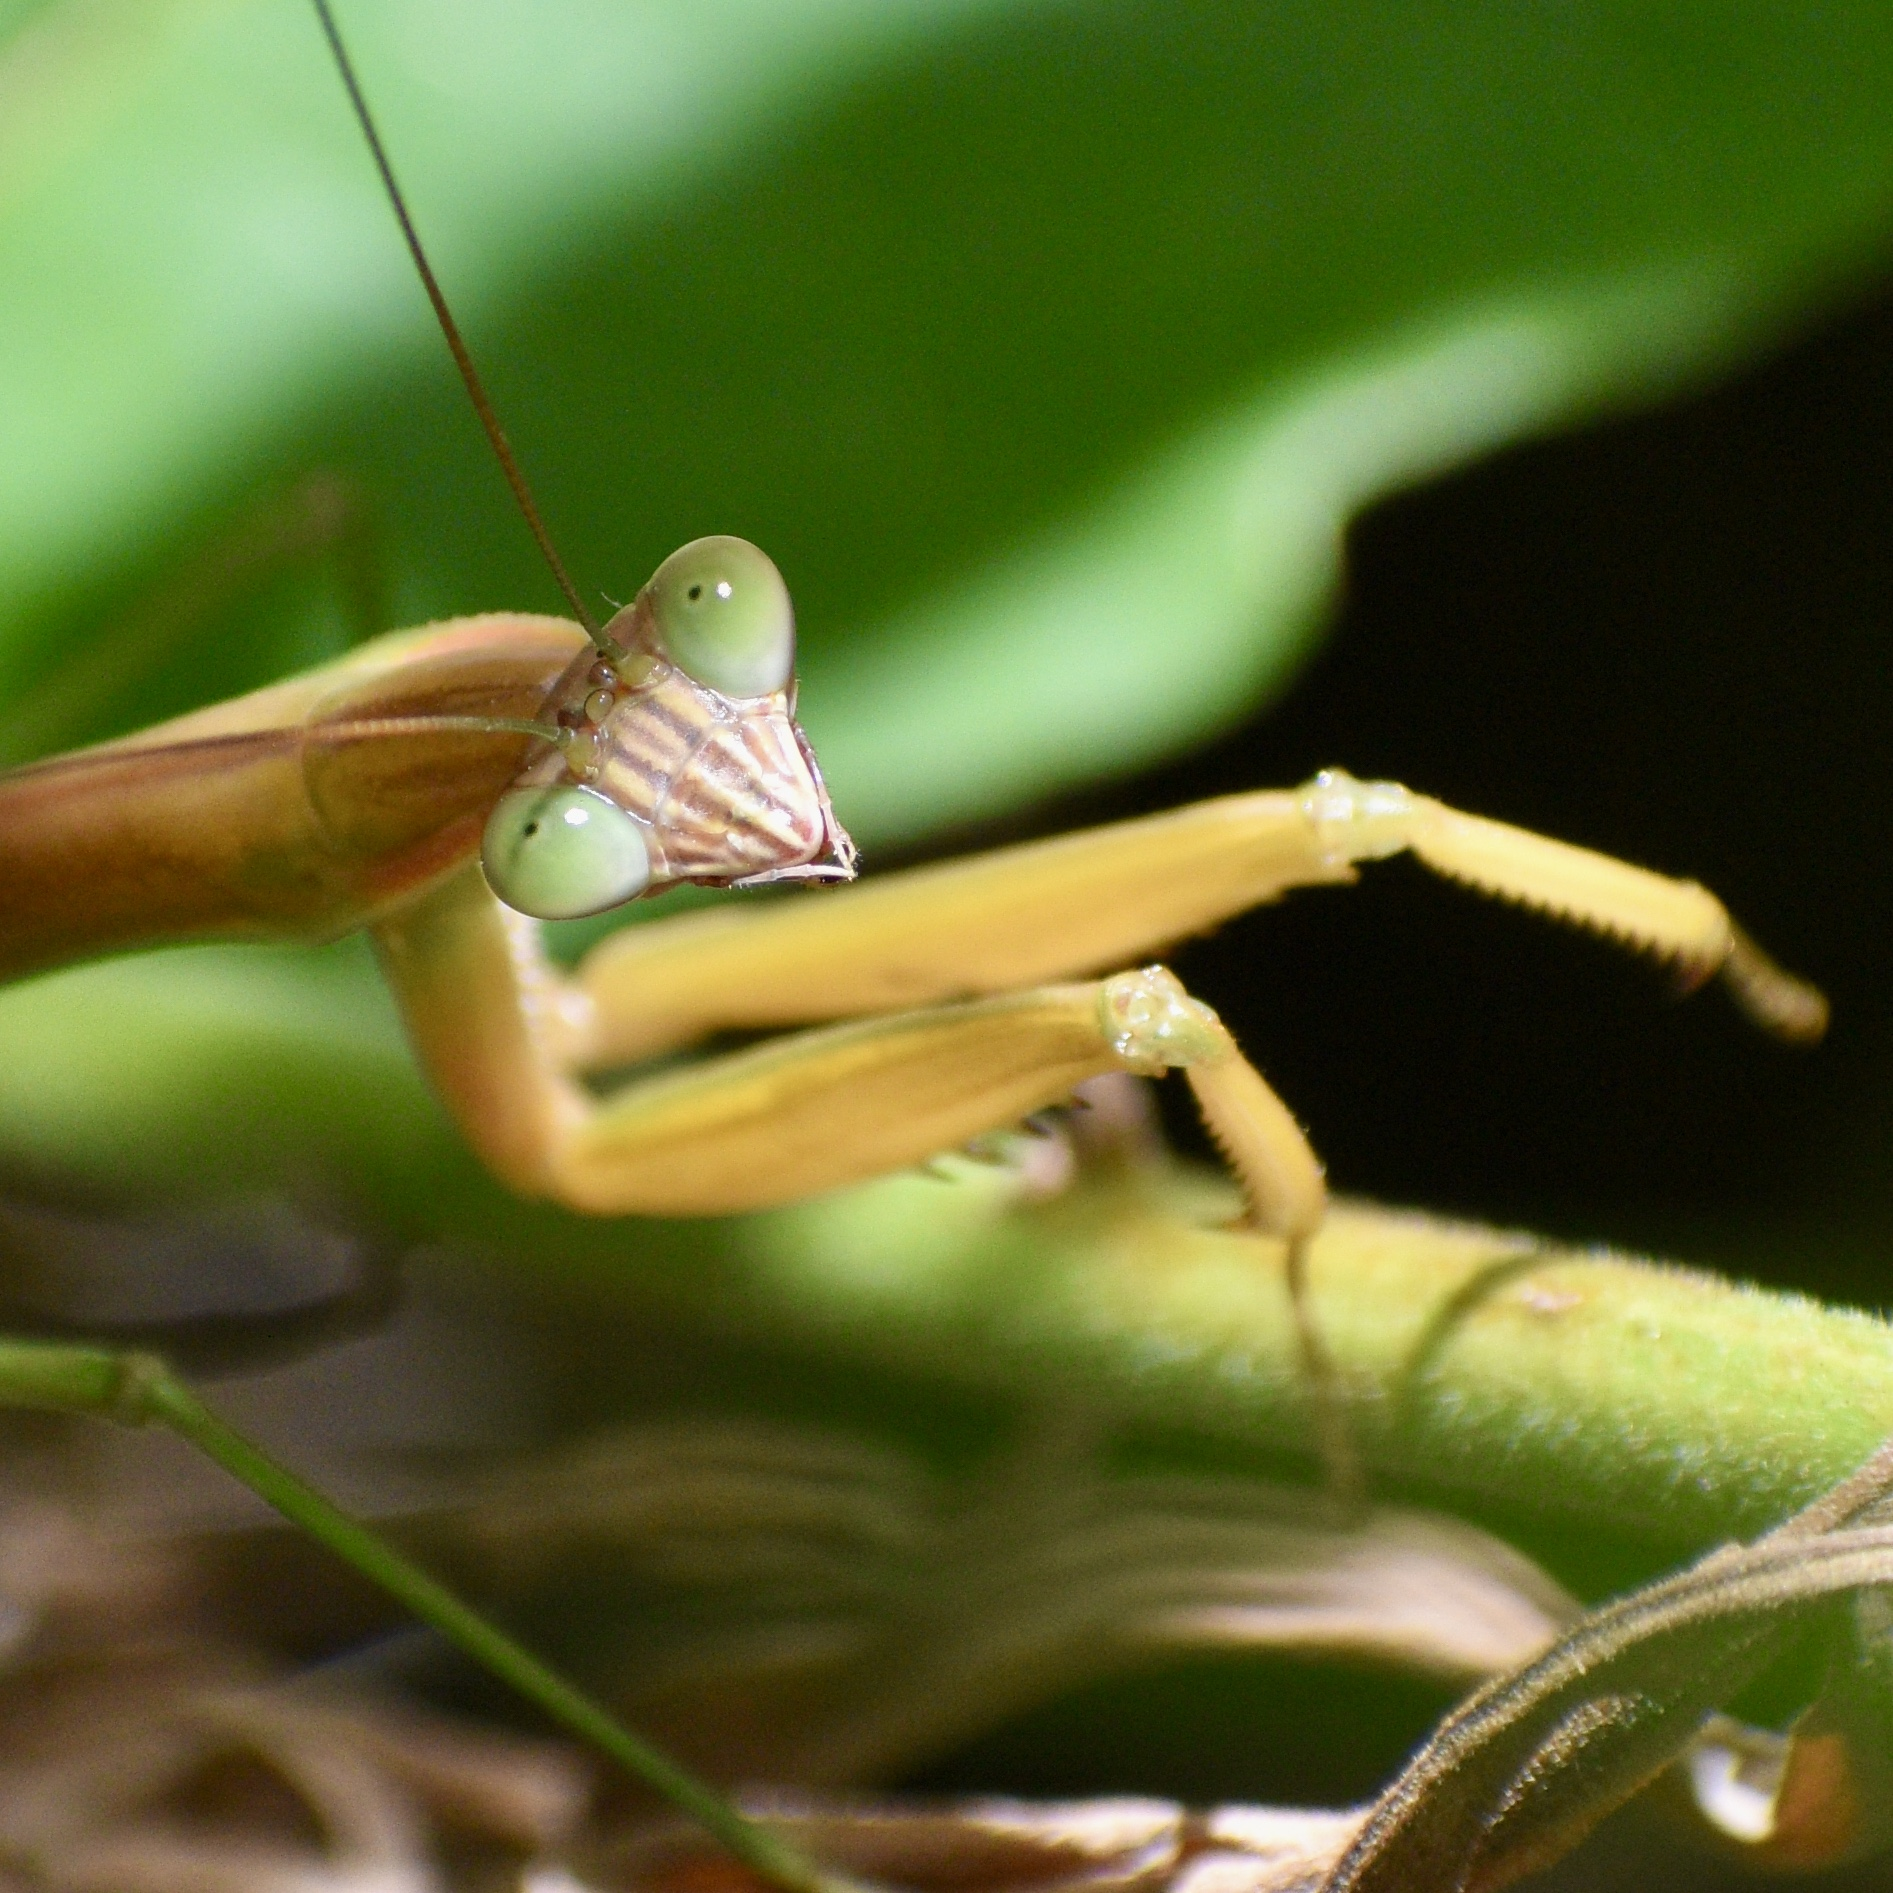 Photo for: Strike a Pose: Praying Mantis Close-Up Captures Photo Contest Win